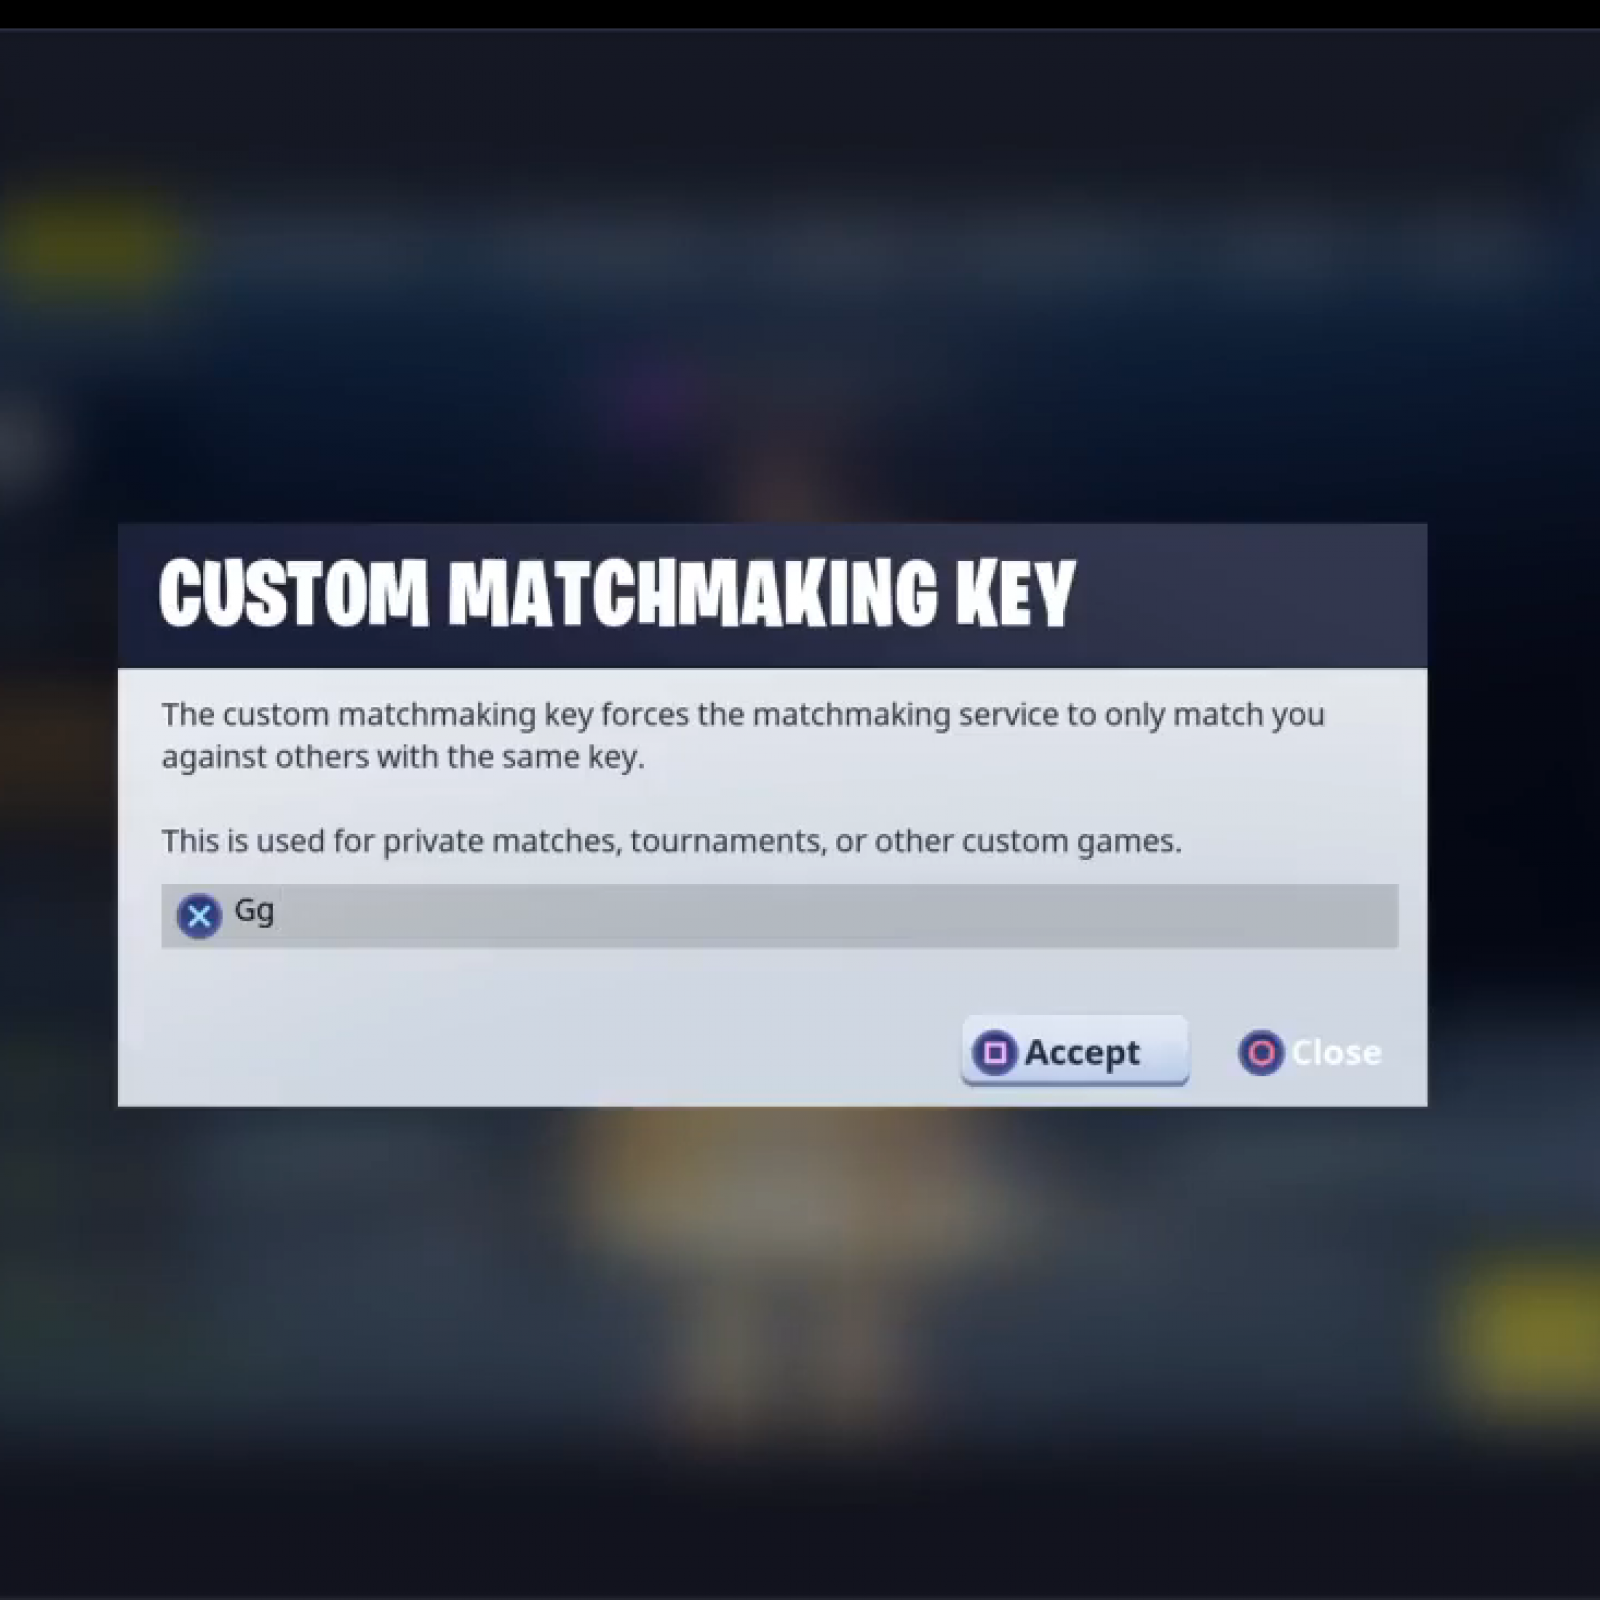 Fortnite' Custom Matchmaking Test Live on PS4, Xbox One With Keys